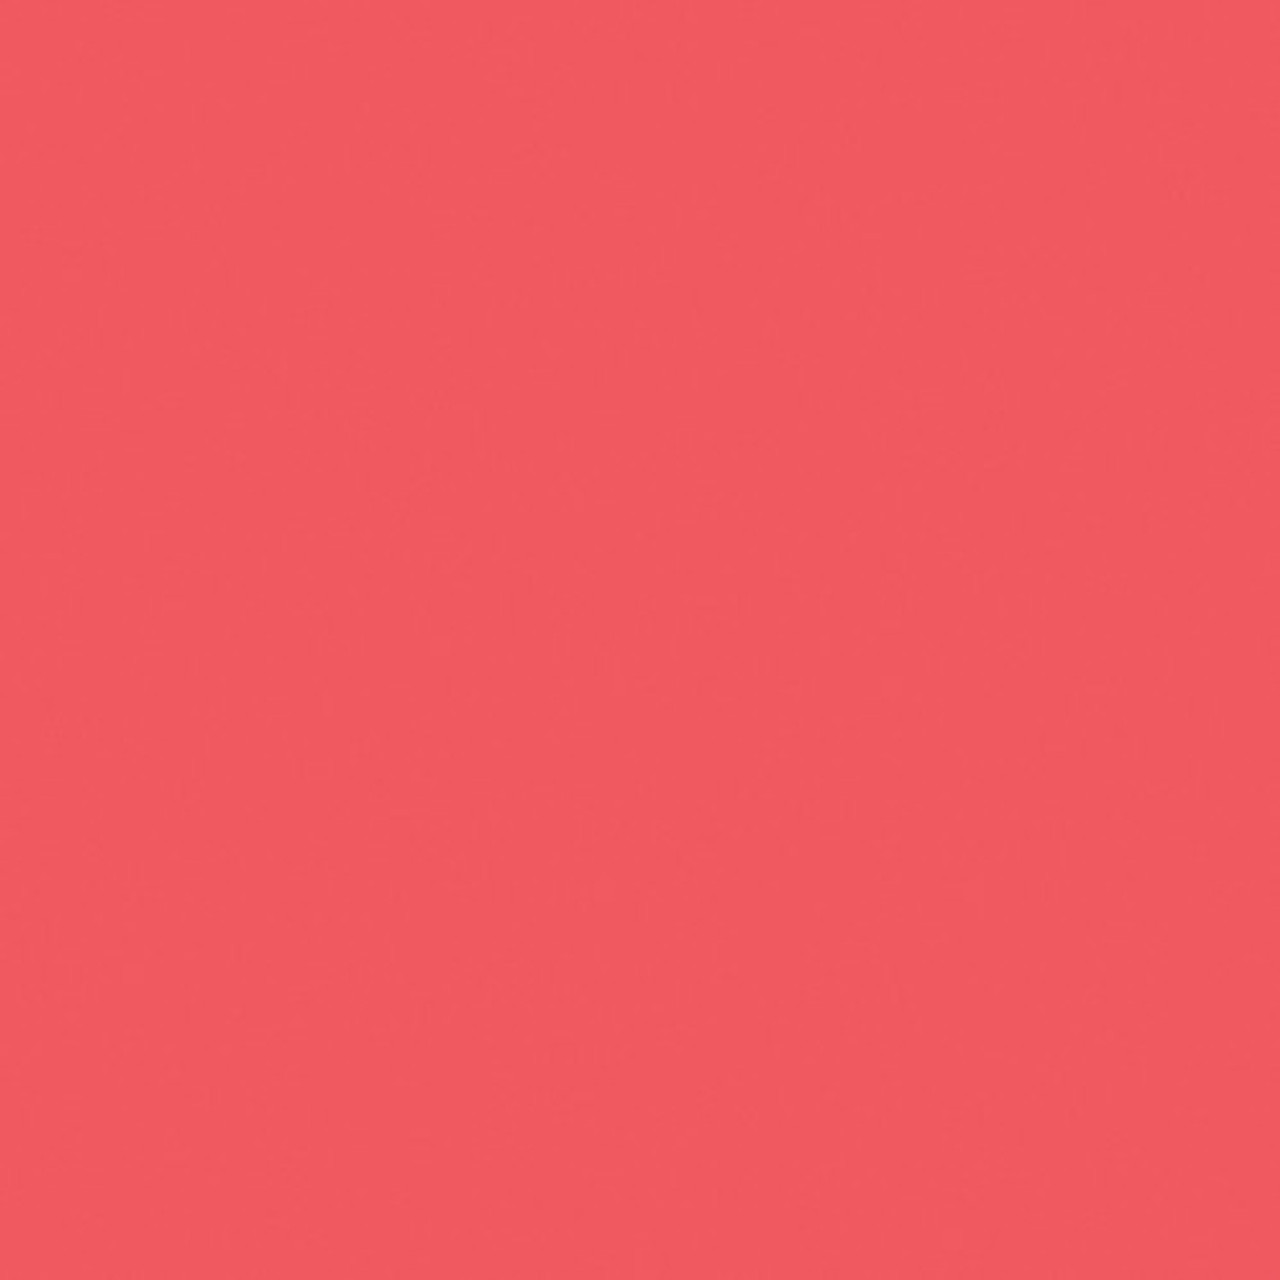 #0032 Rosco Gels Roscolux Medium Salmon Pink, 20x24""